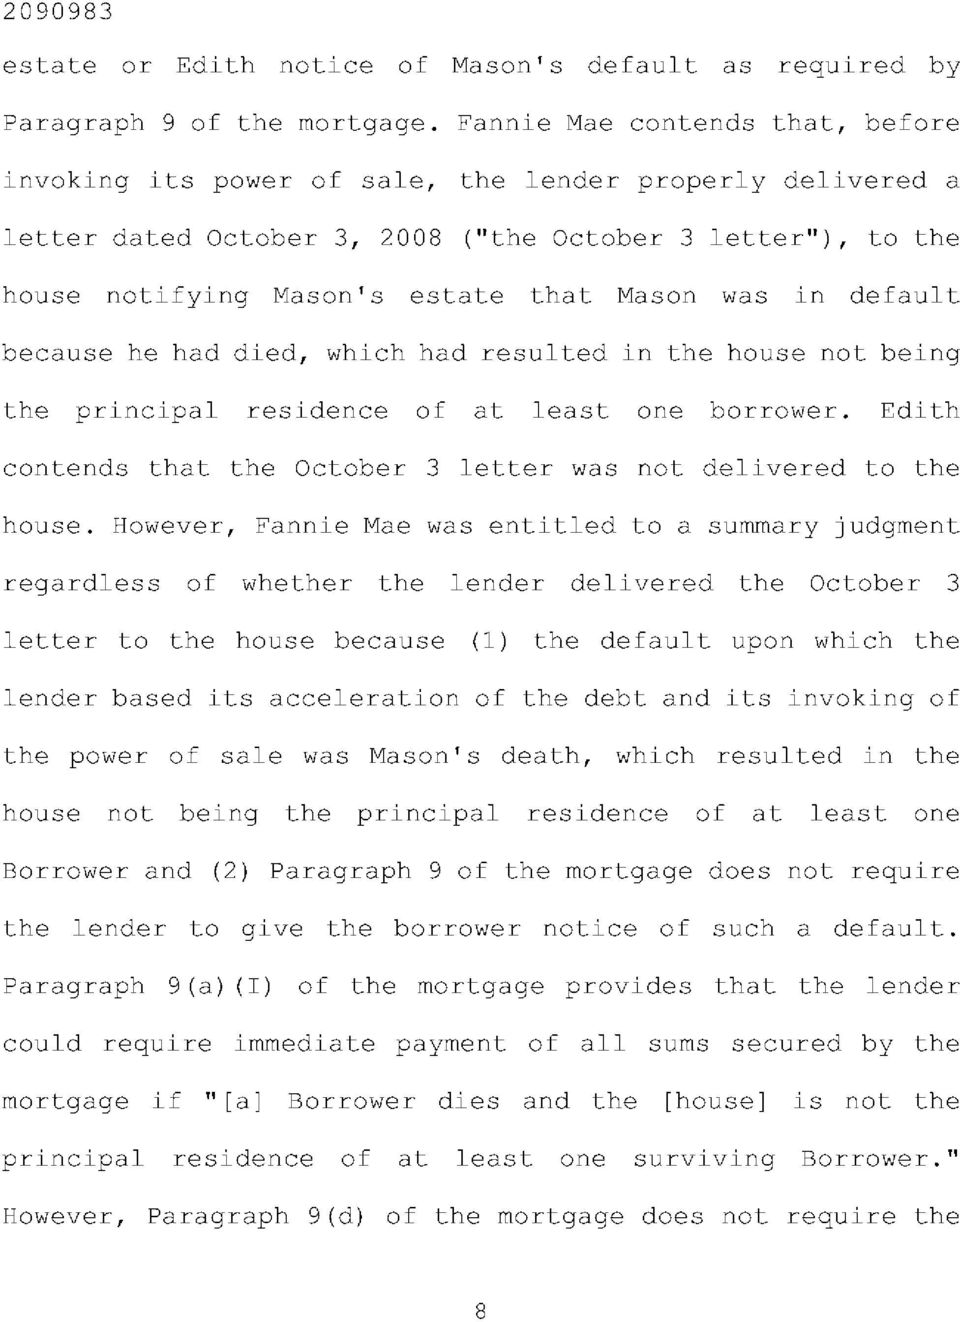 was in default because he had died, which had resulted in the house not being the principal residence of at least one borrower. Edith contends that the October 3 letter was not delivered to the house.